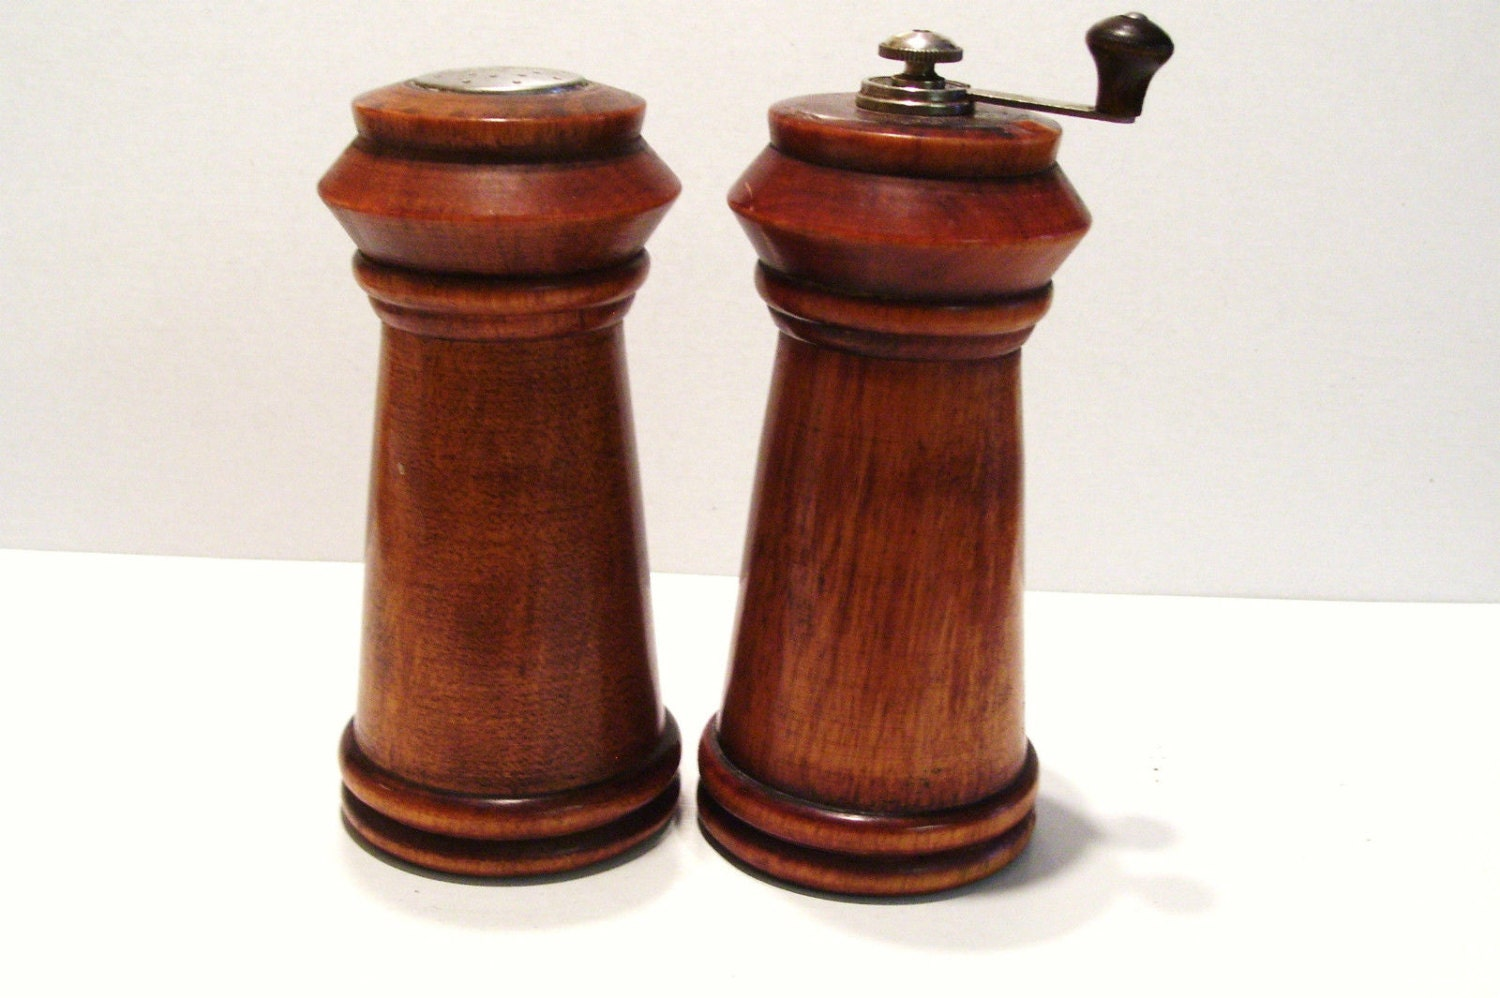 baribo wooden salt shaker and pepper mill set mid century. Black Bedroom Furniture Sets. Home Design Ideas